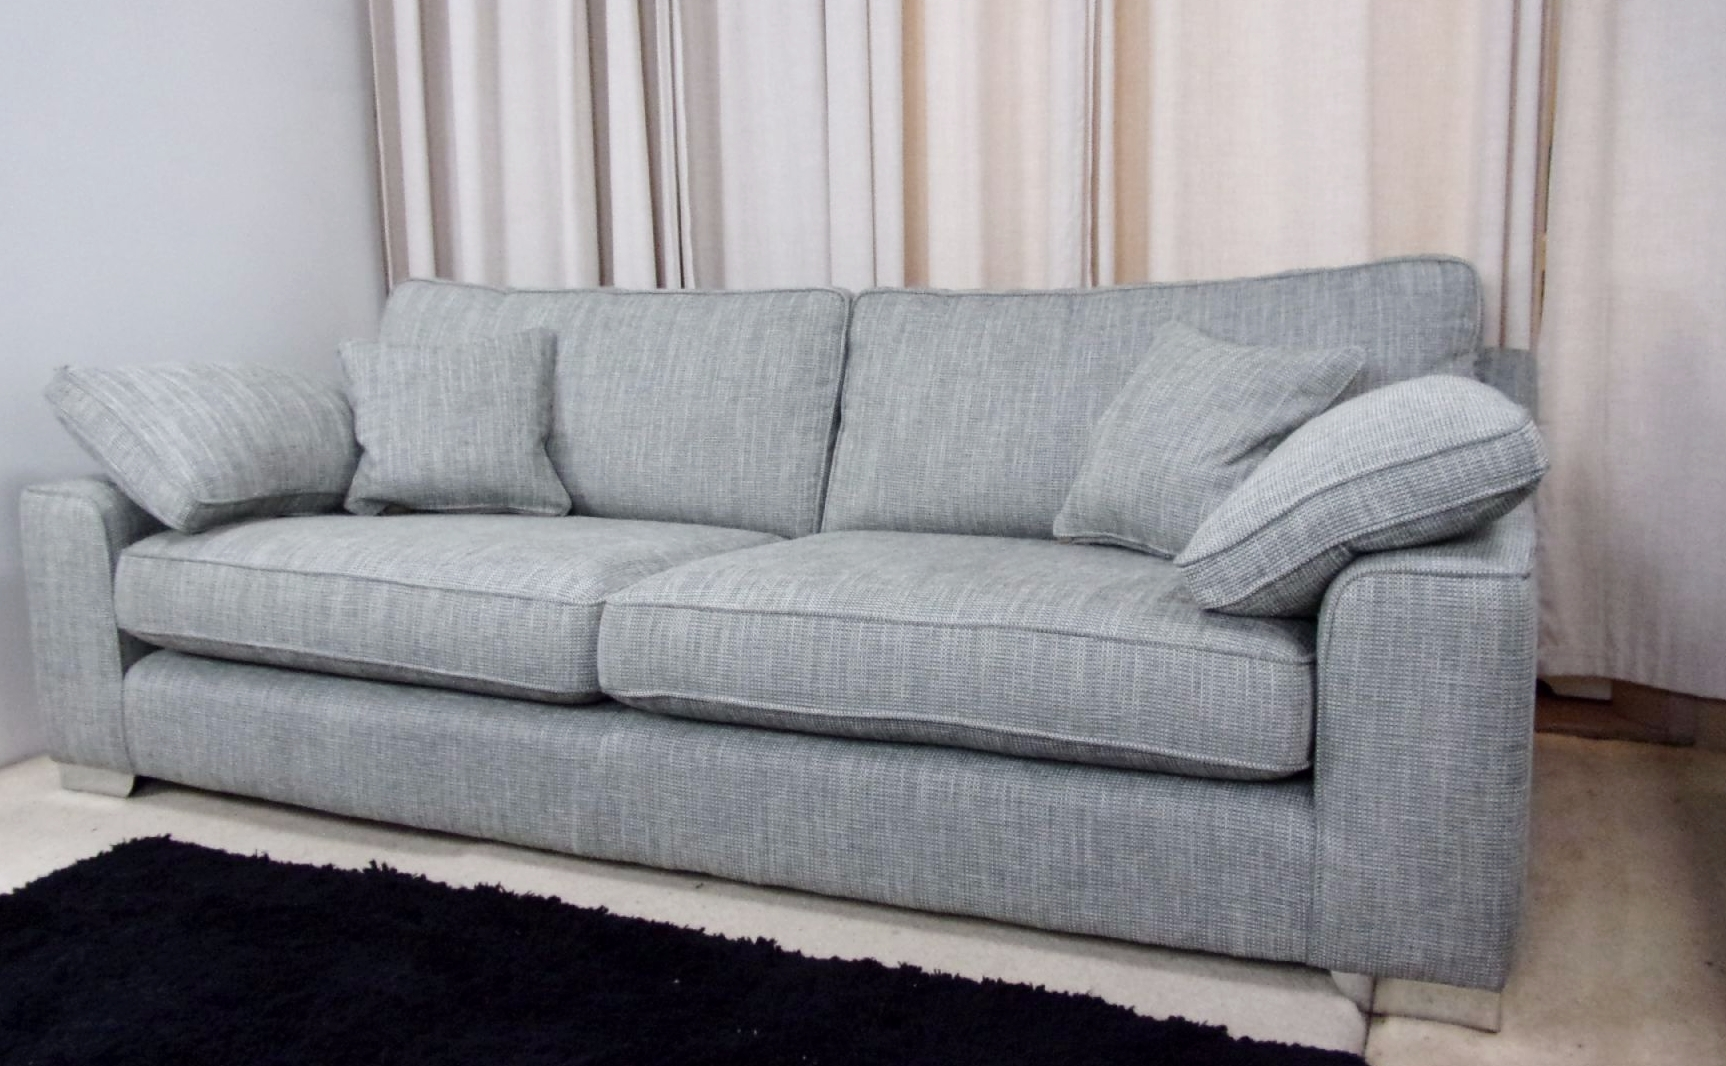 Big Seat Sofa 20 Best Collection Of Large 4 Seater Sofas Sofa Ideas